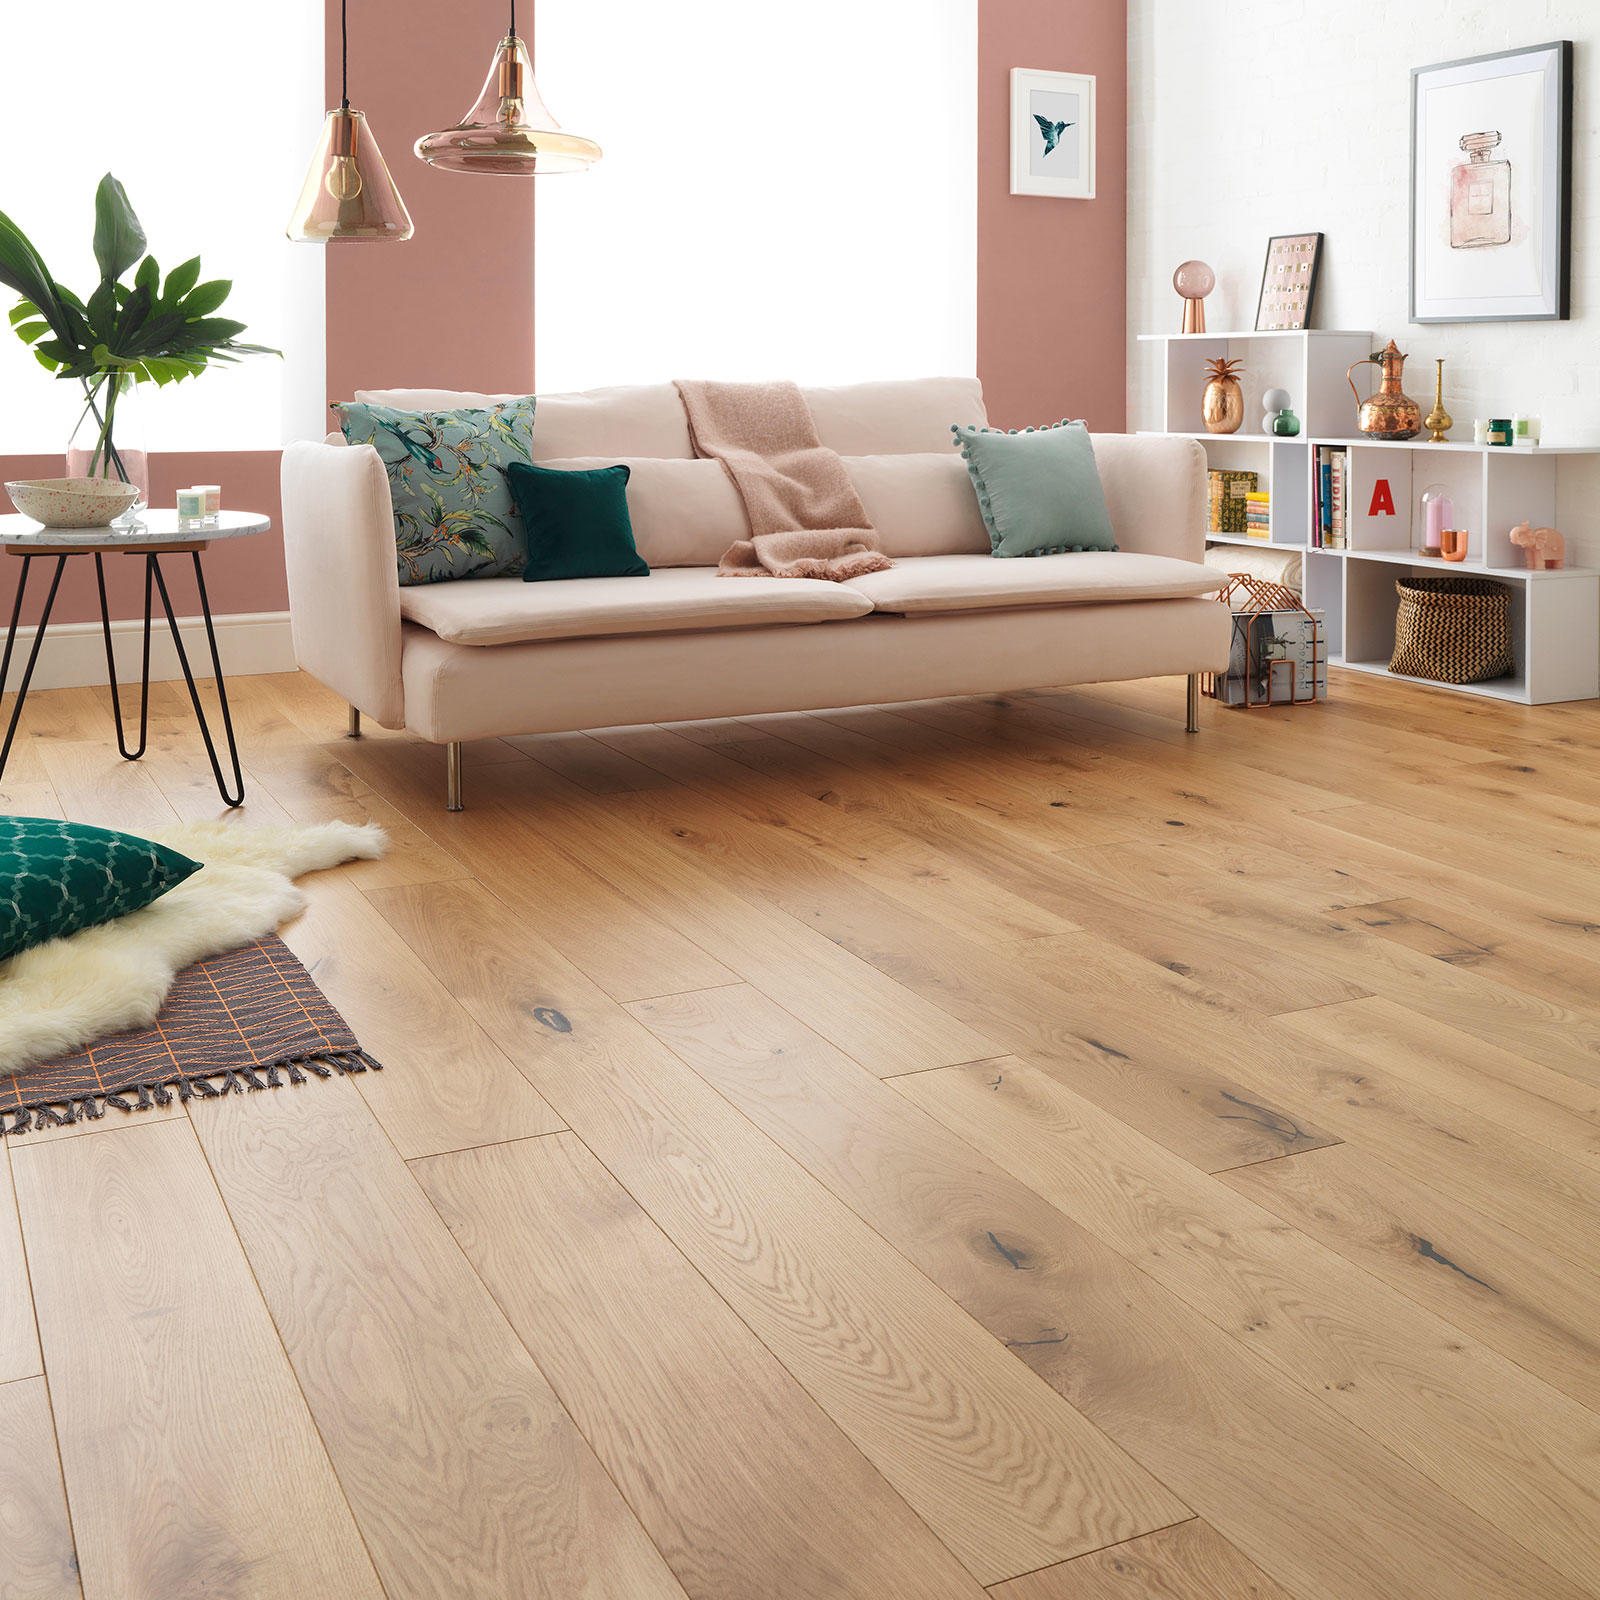 Woodpecker Harlech Rustic Oak Wide Oiled Engineered Wood Flooring 190mm 35-HRO-001